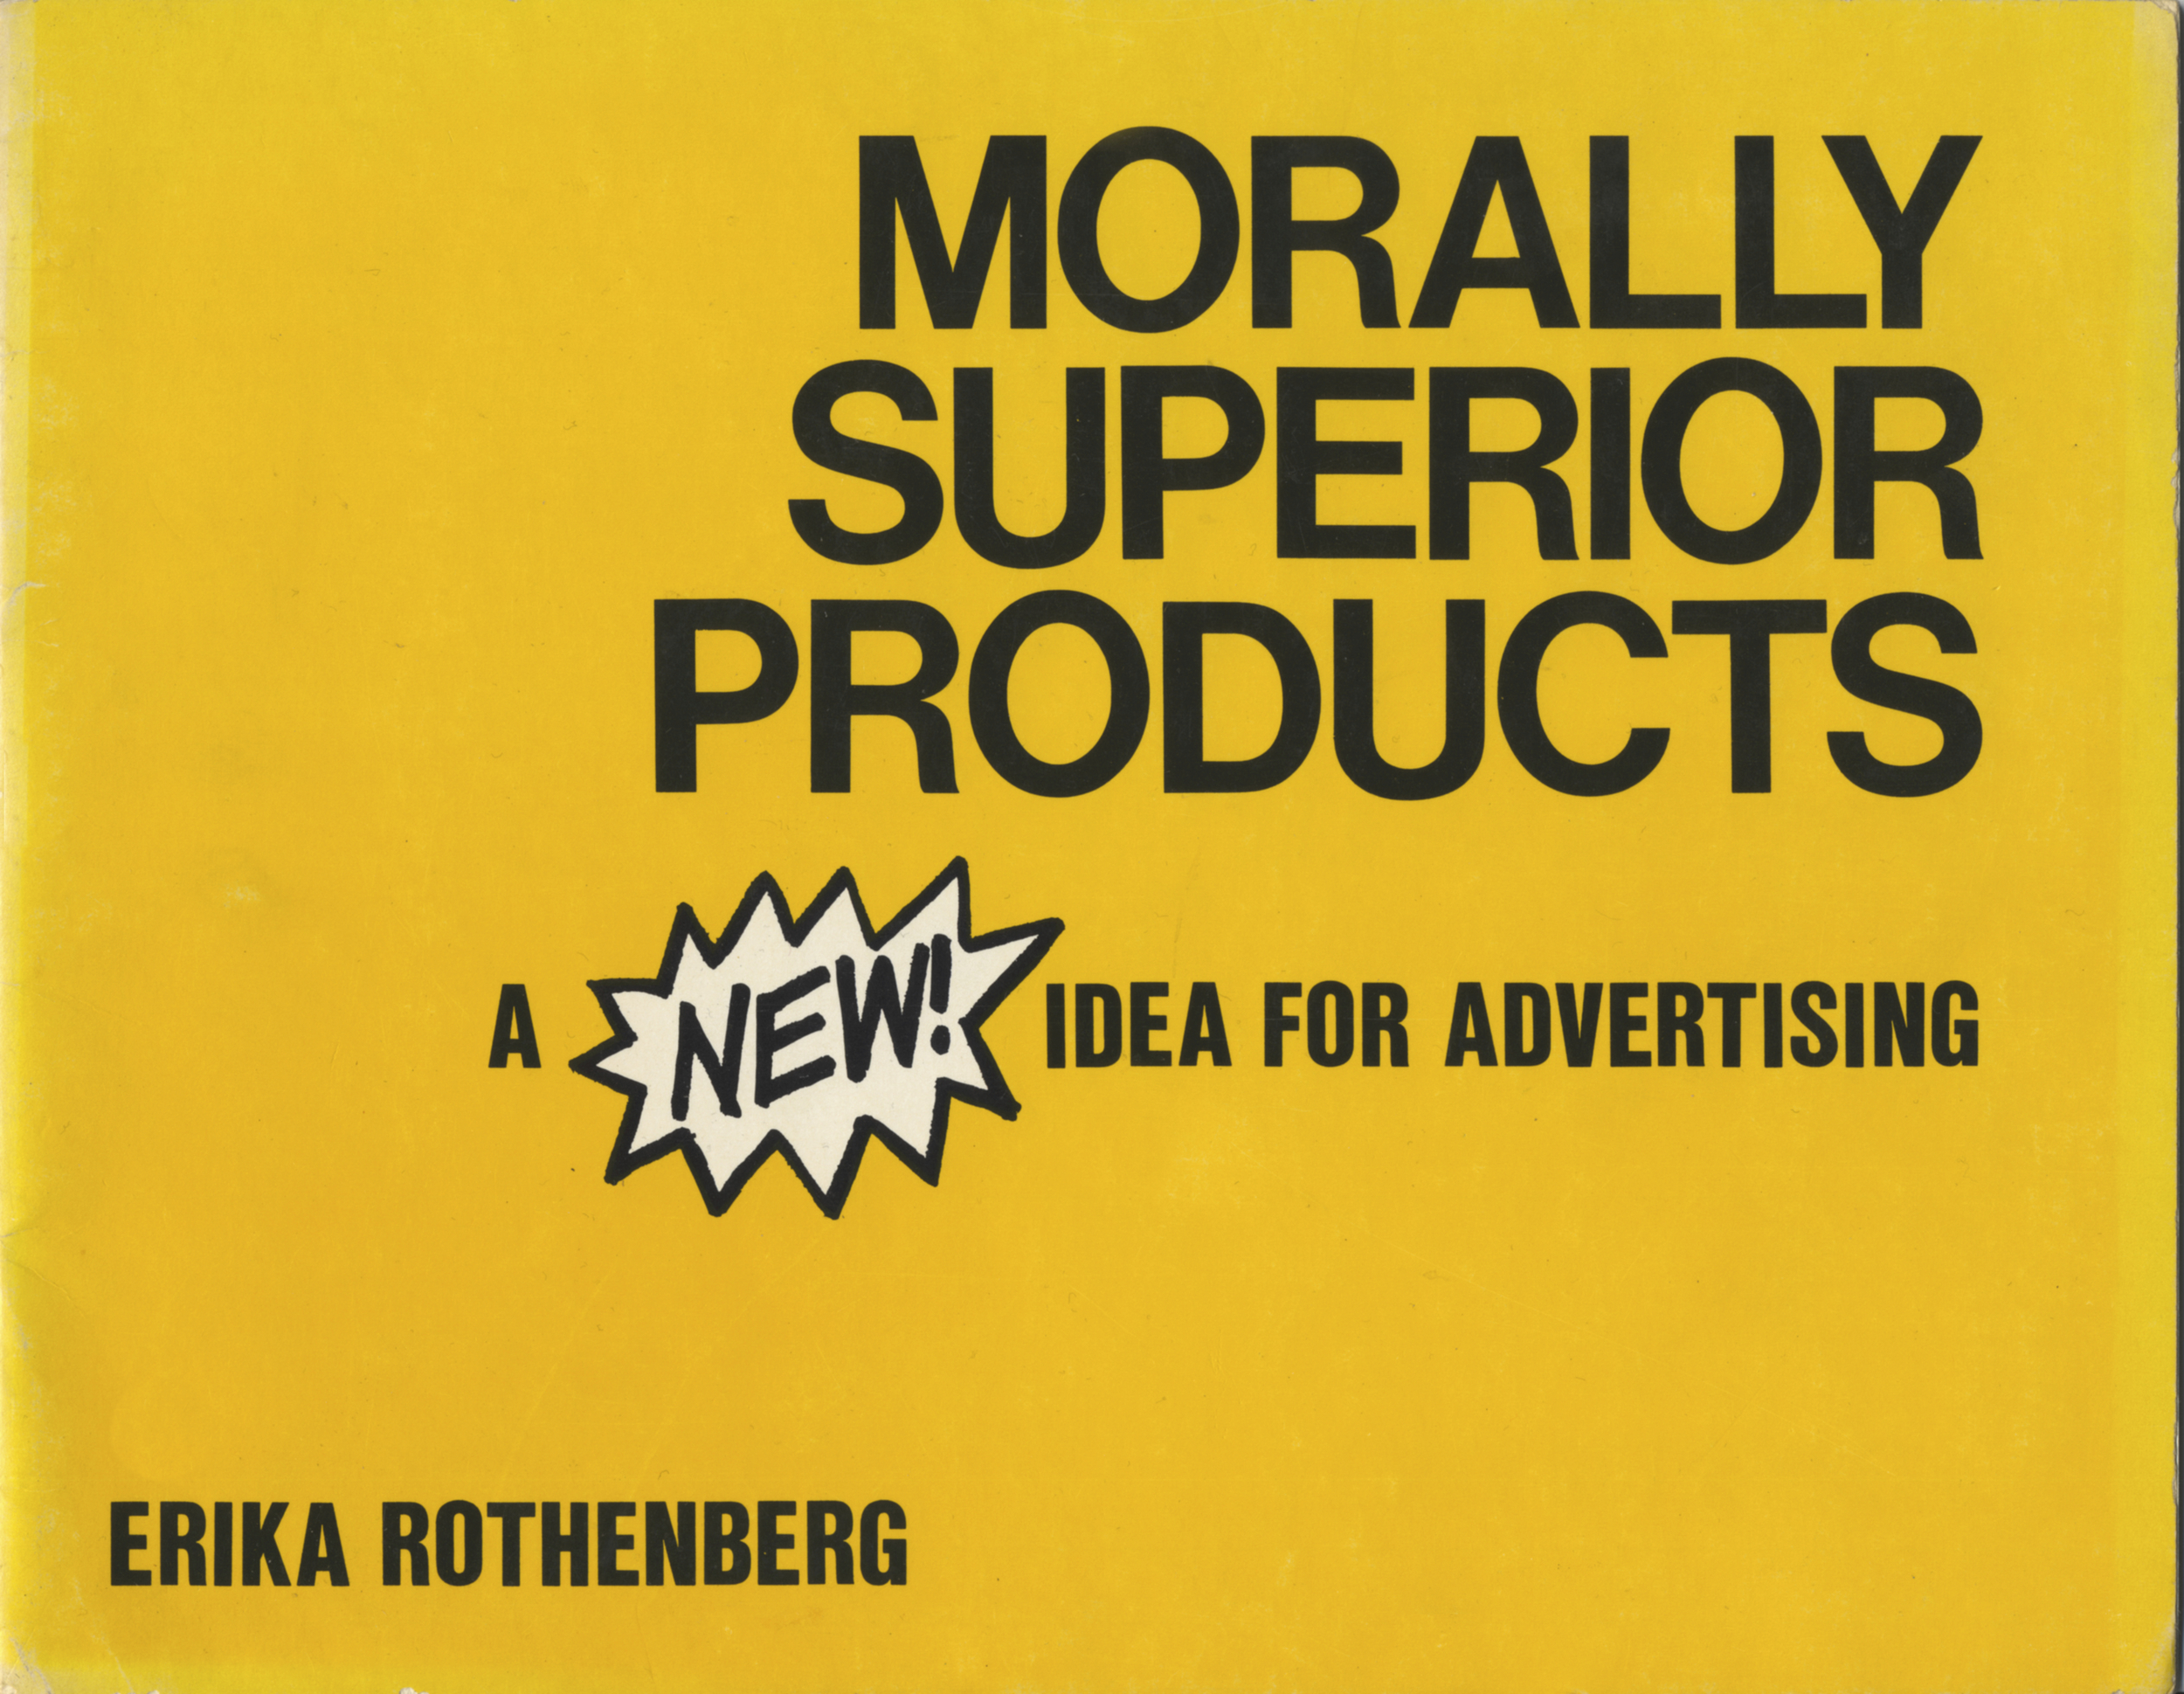 Morally Superior Products